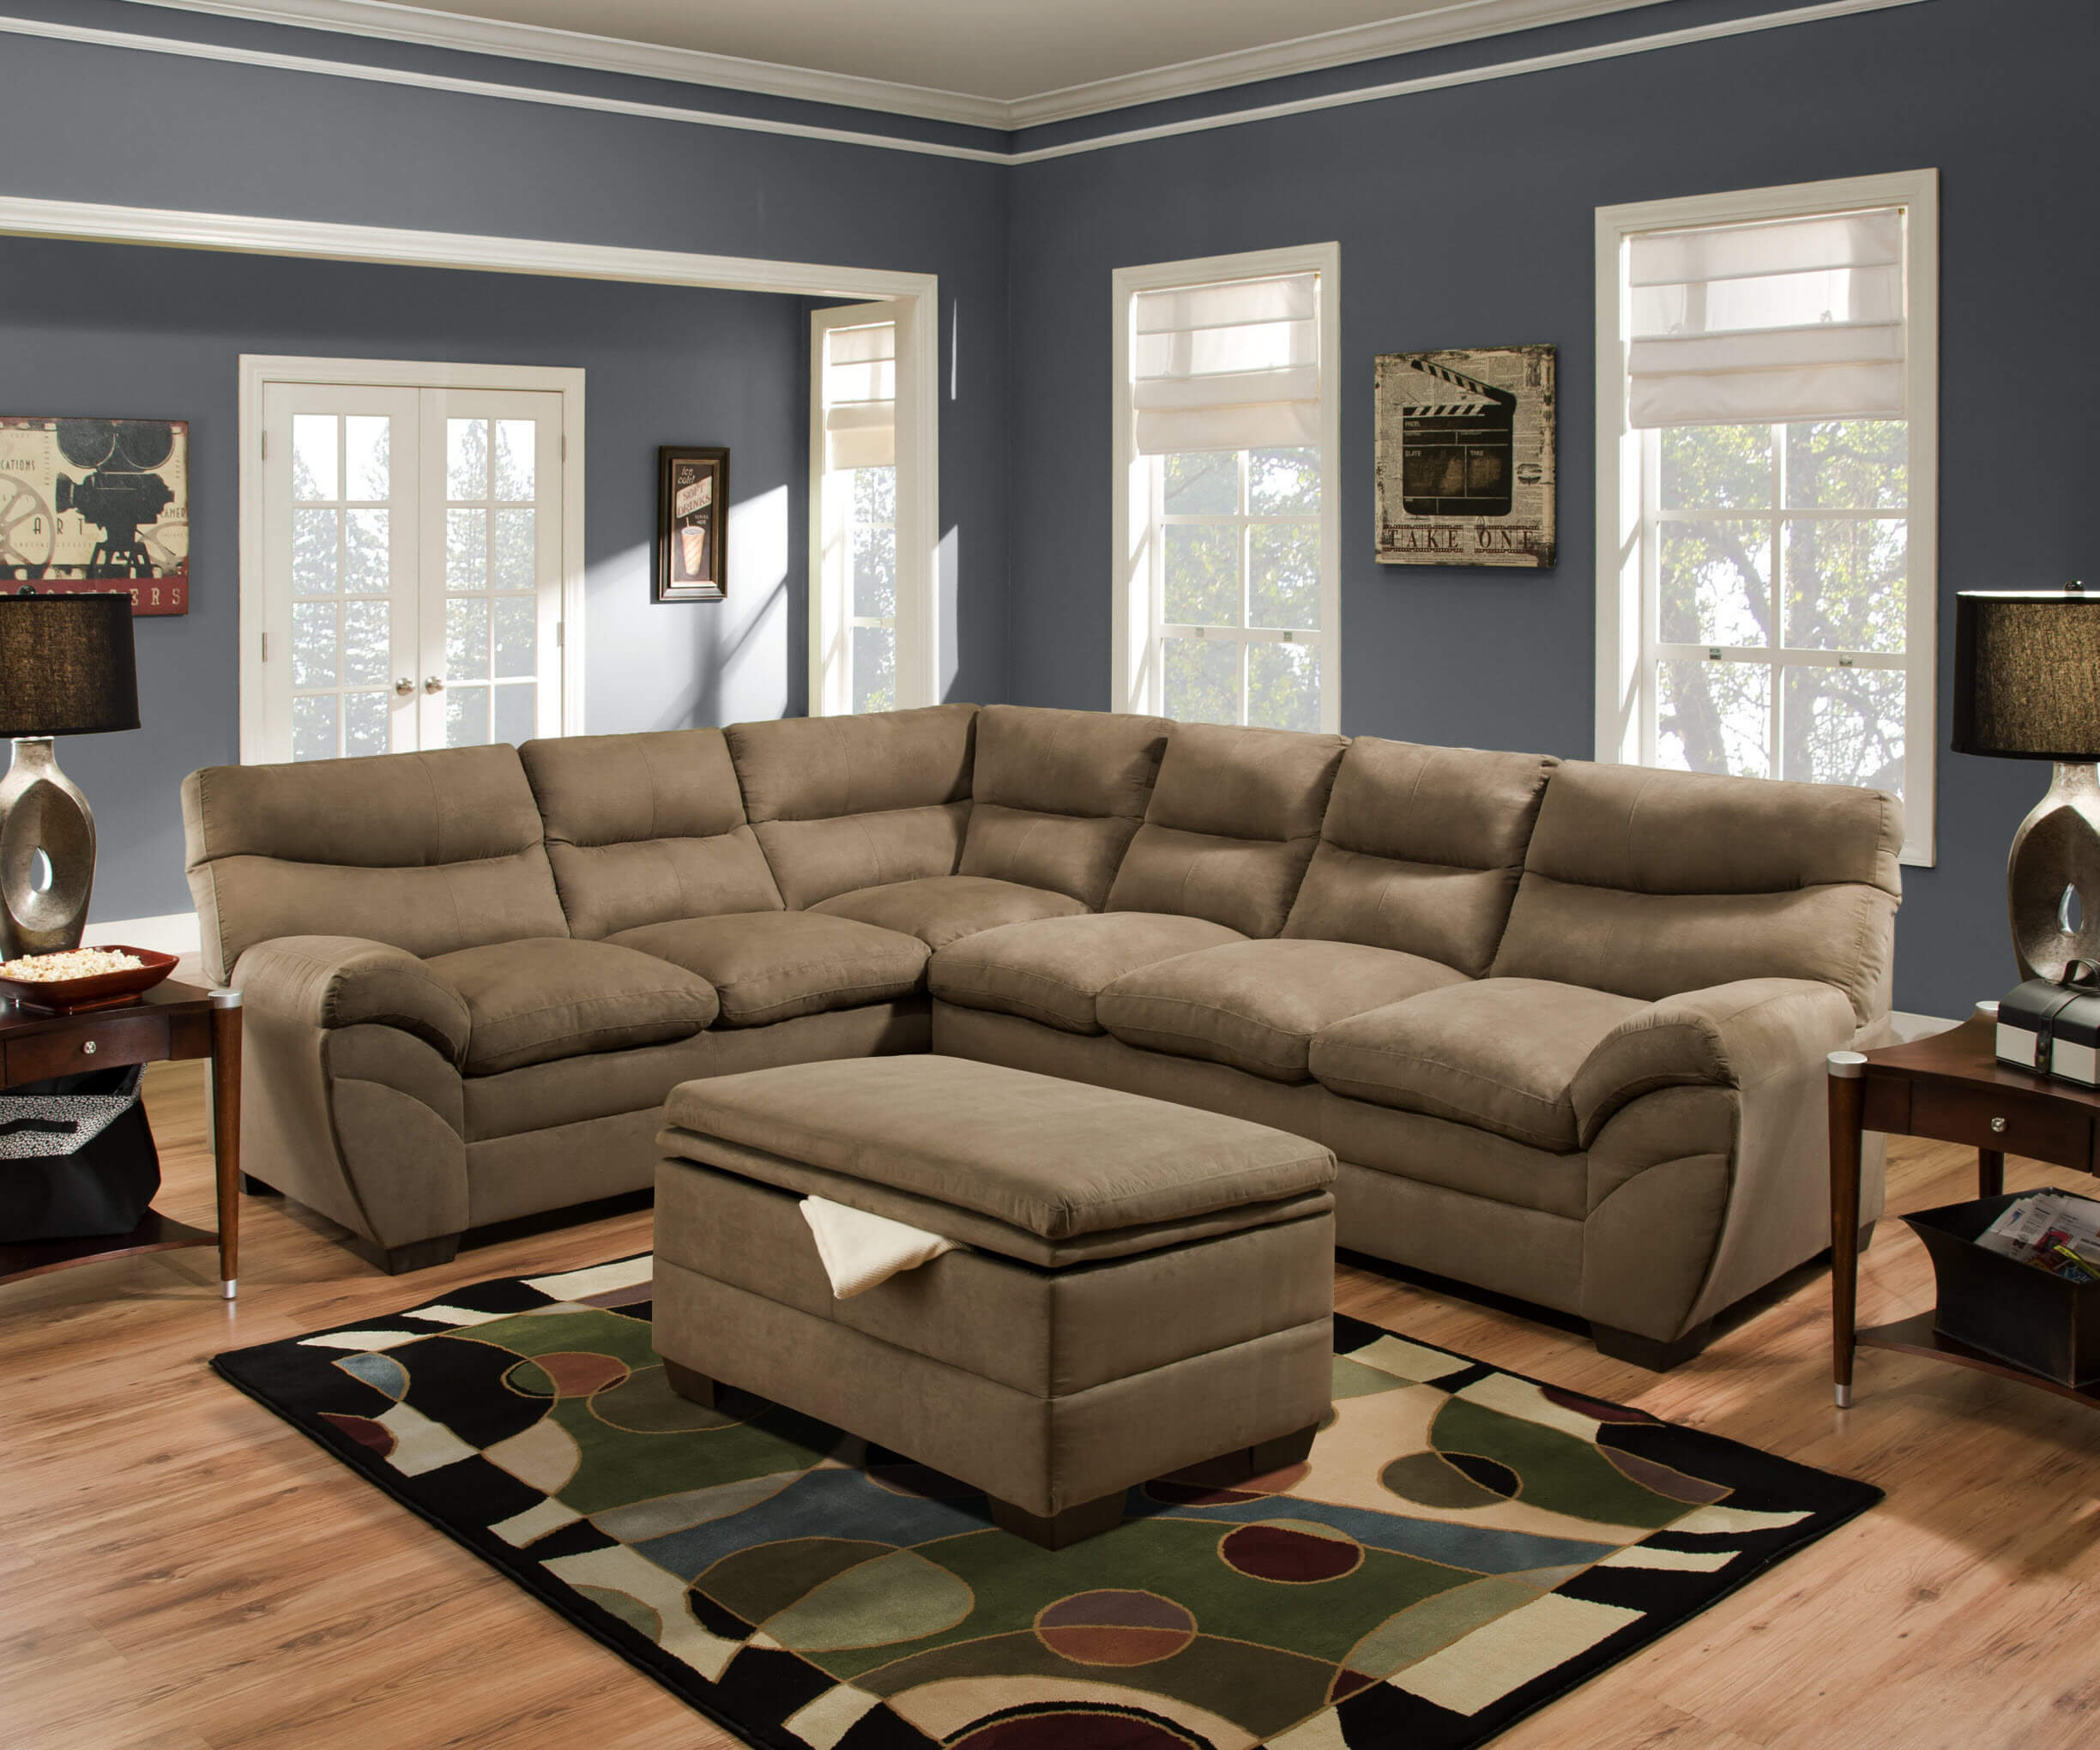 otto couch sale otto seater sofa frost with otto couch sale best otto seater sofa frost with. Black Bedroom Furniture Sets. Home Design Ideas